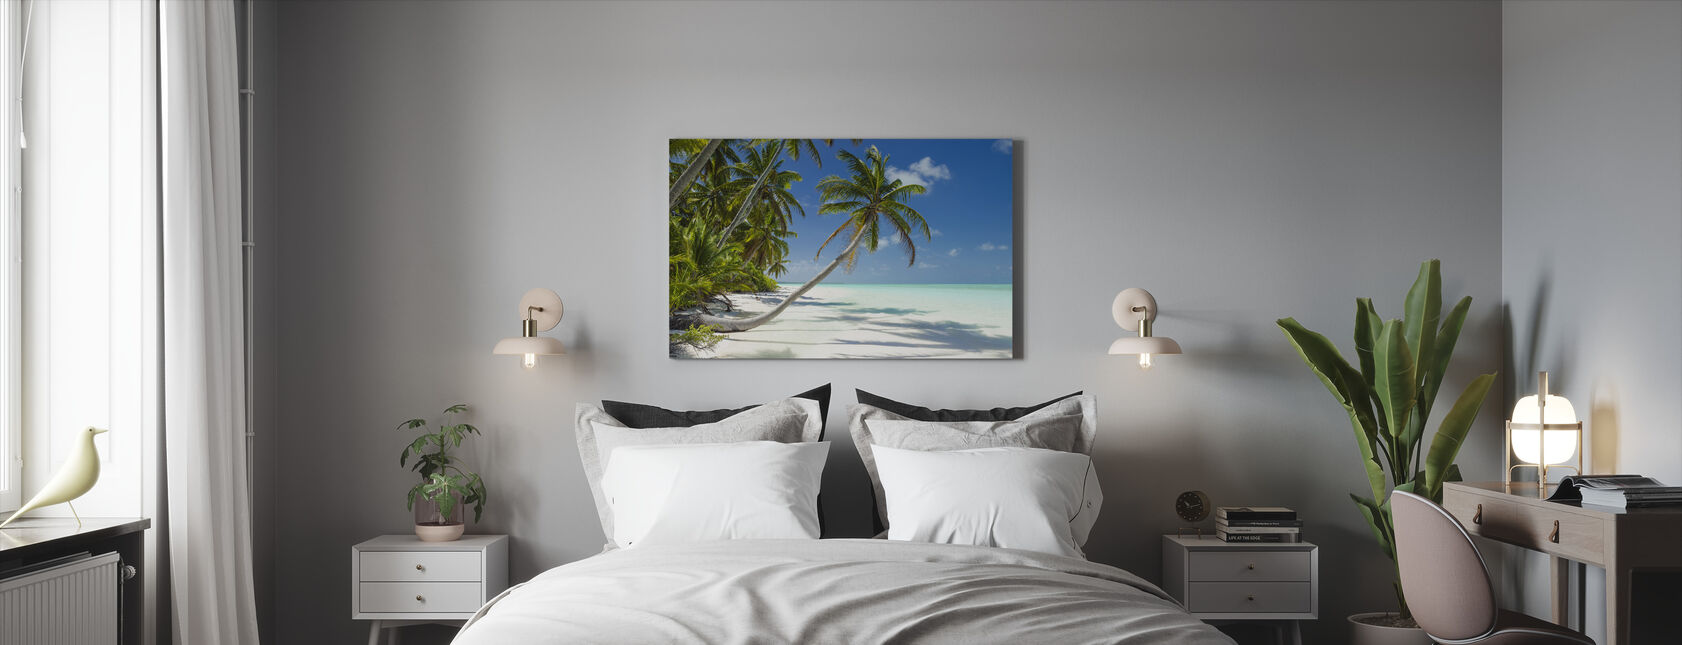 Lagoon and Palm Trees - Canvas print - Bedroom